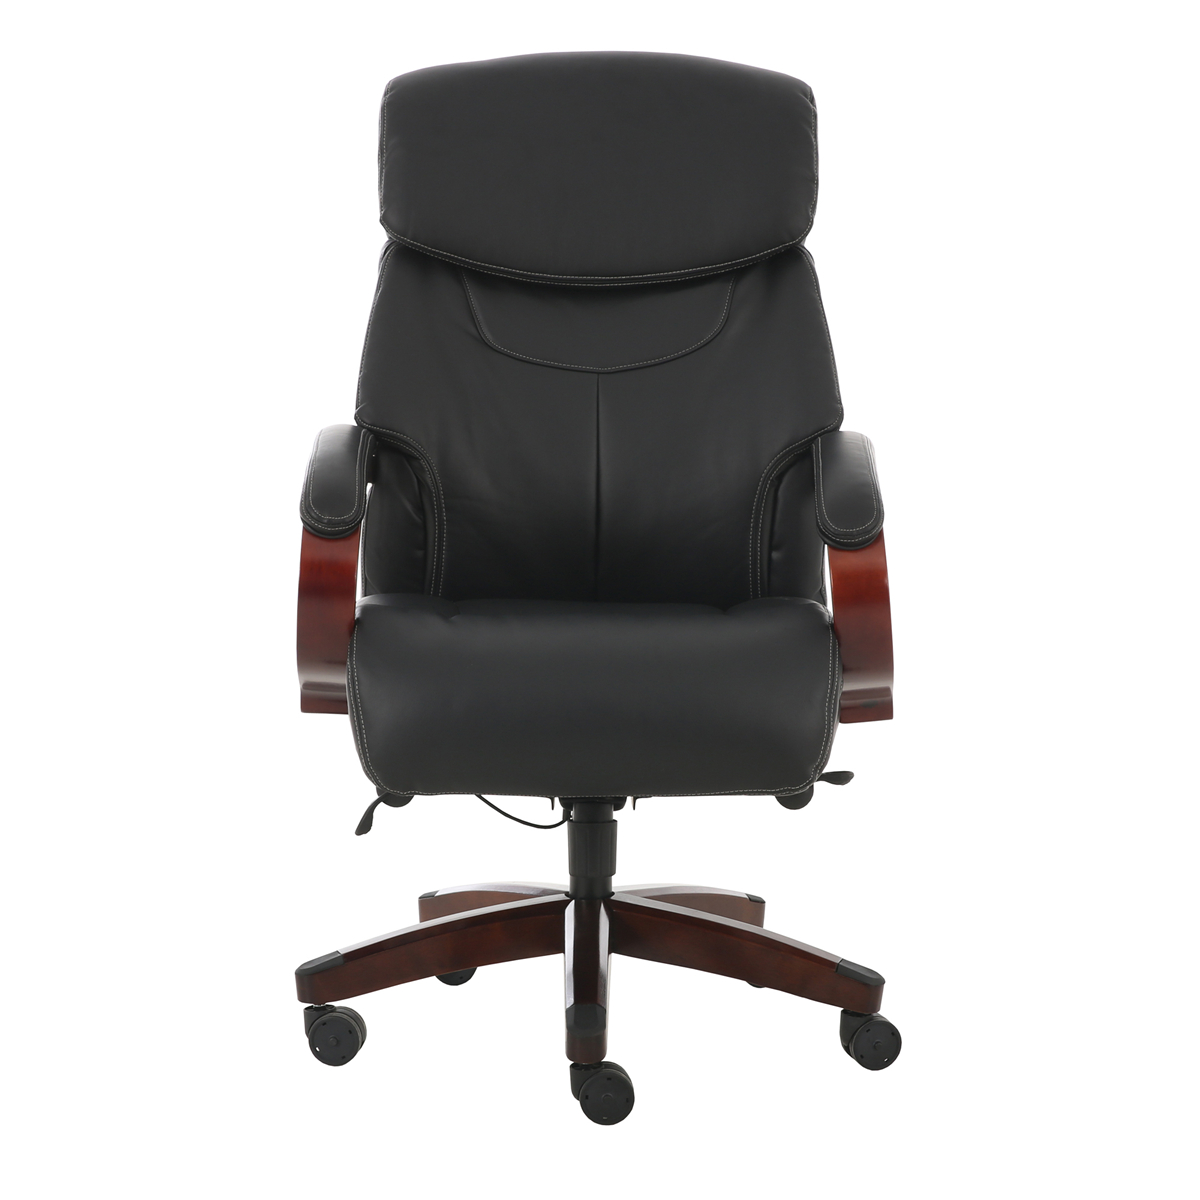 Ergonomic Office Chair High Back PU Leather Executive S